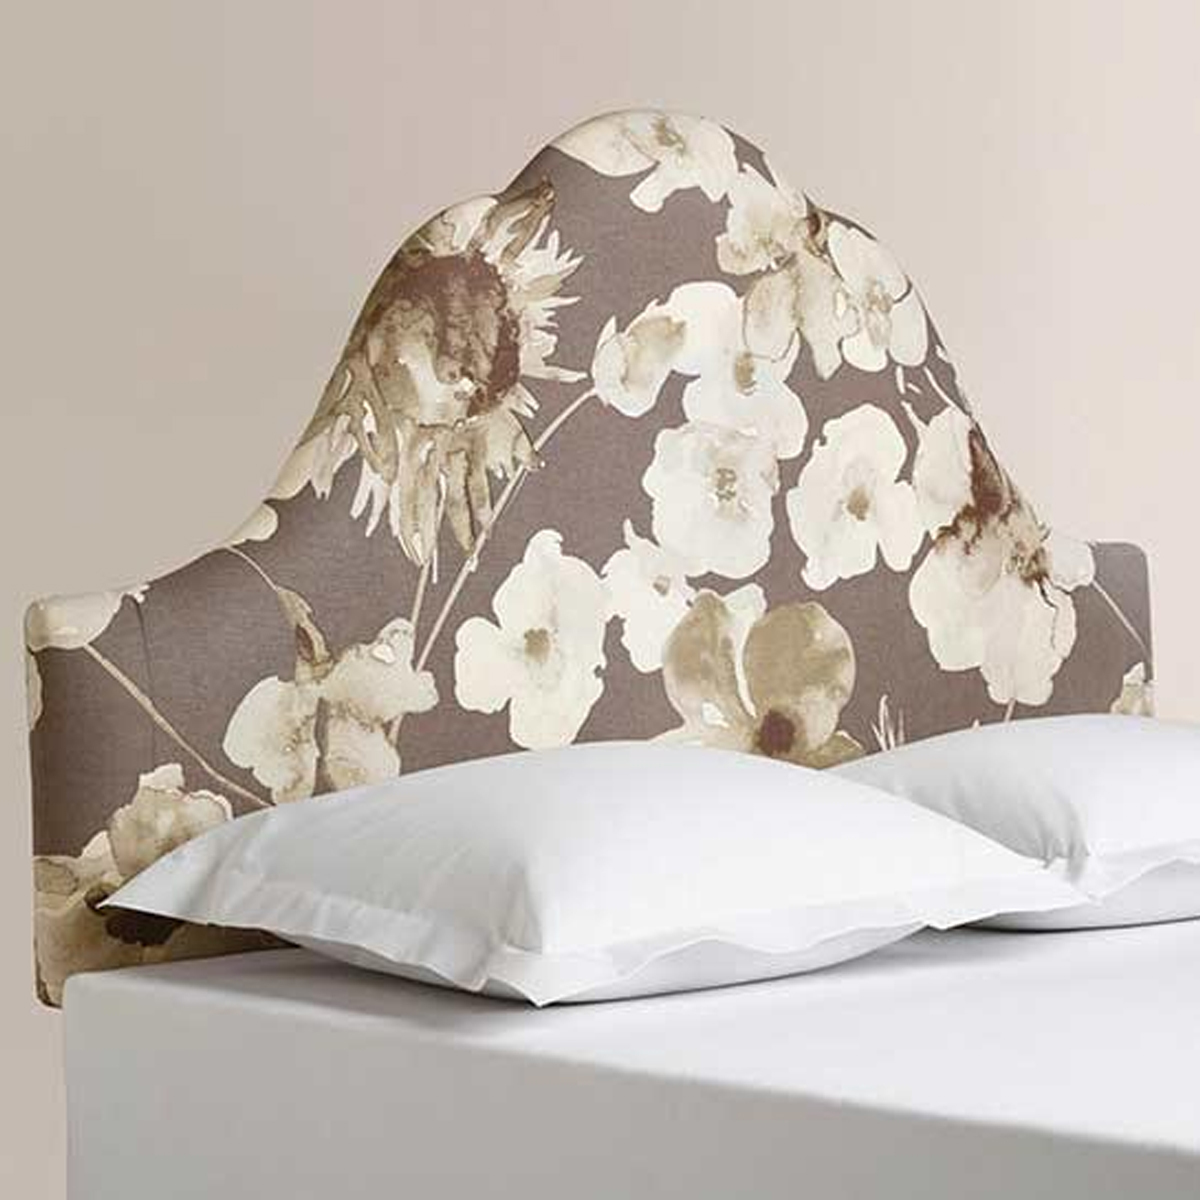 Upholstered headboard in a watercolor floral print is a statement piece we love. photo